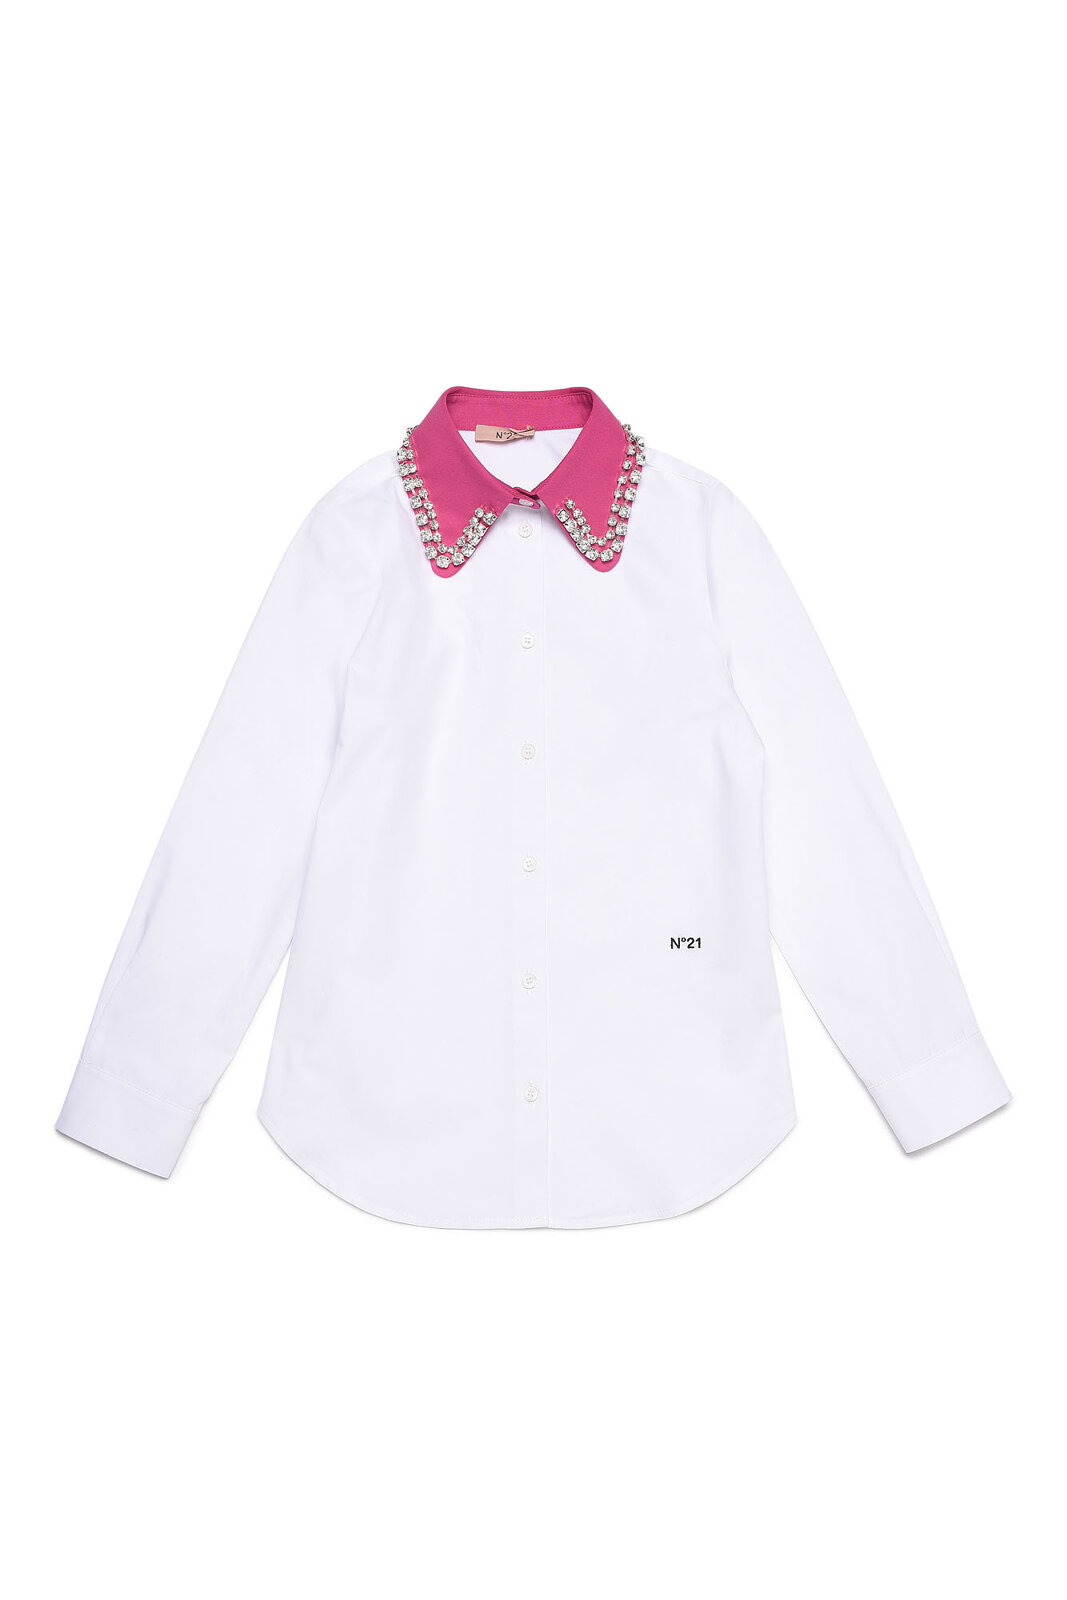 Shirt - N21 Junior